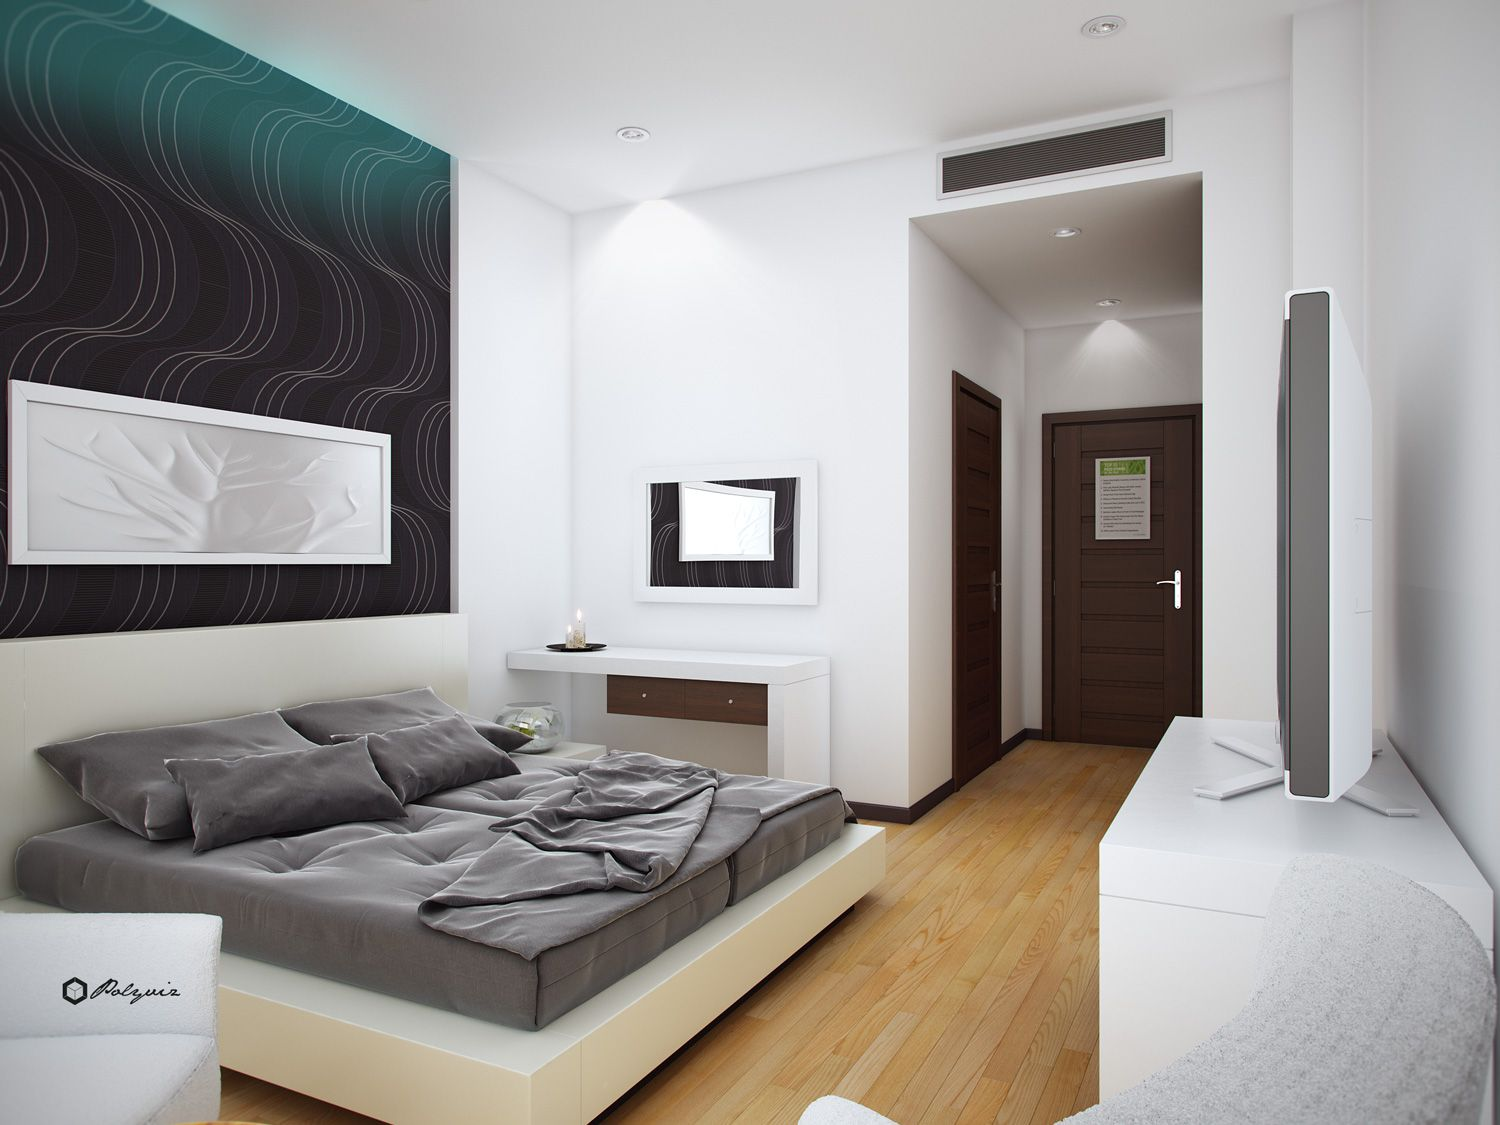 Modern hotel room design google search room design for Design hotel rooms